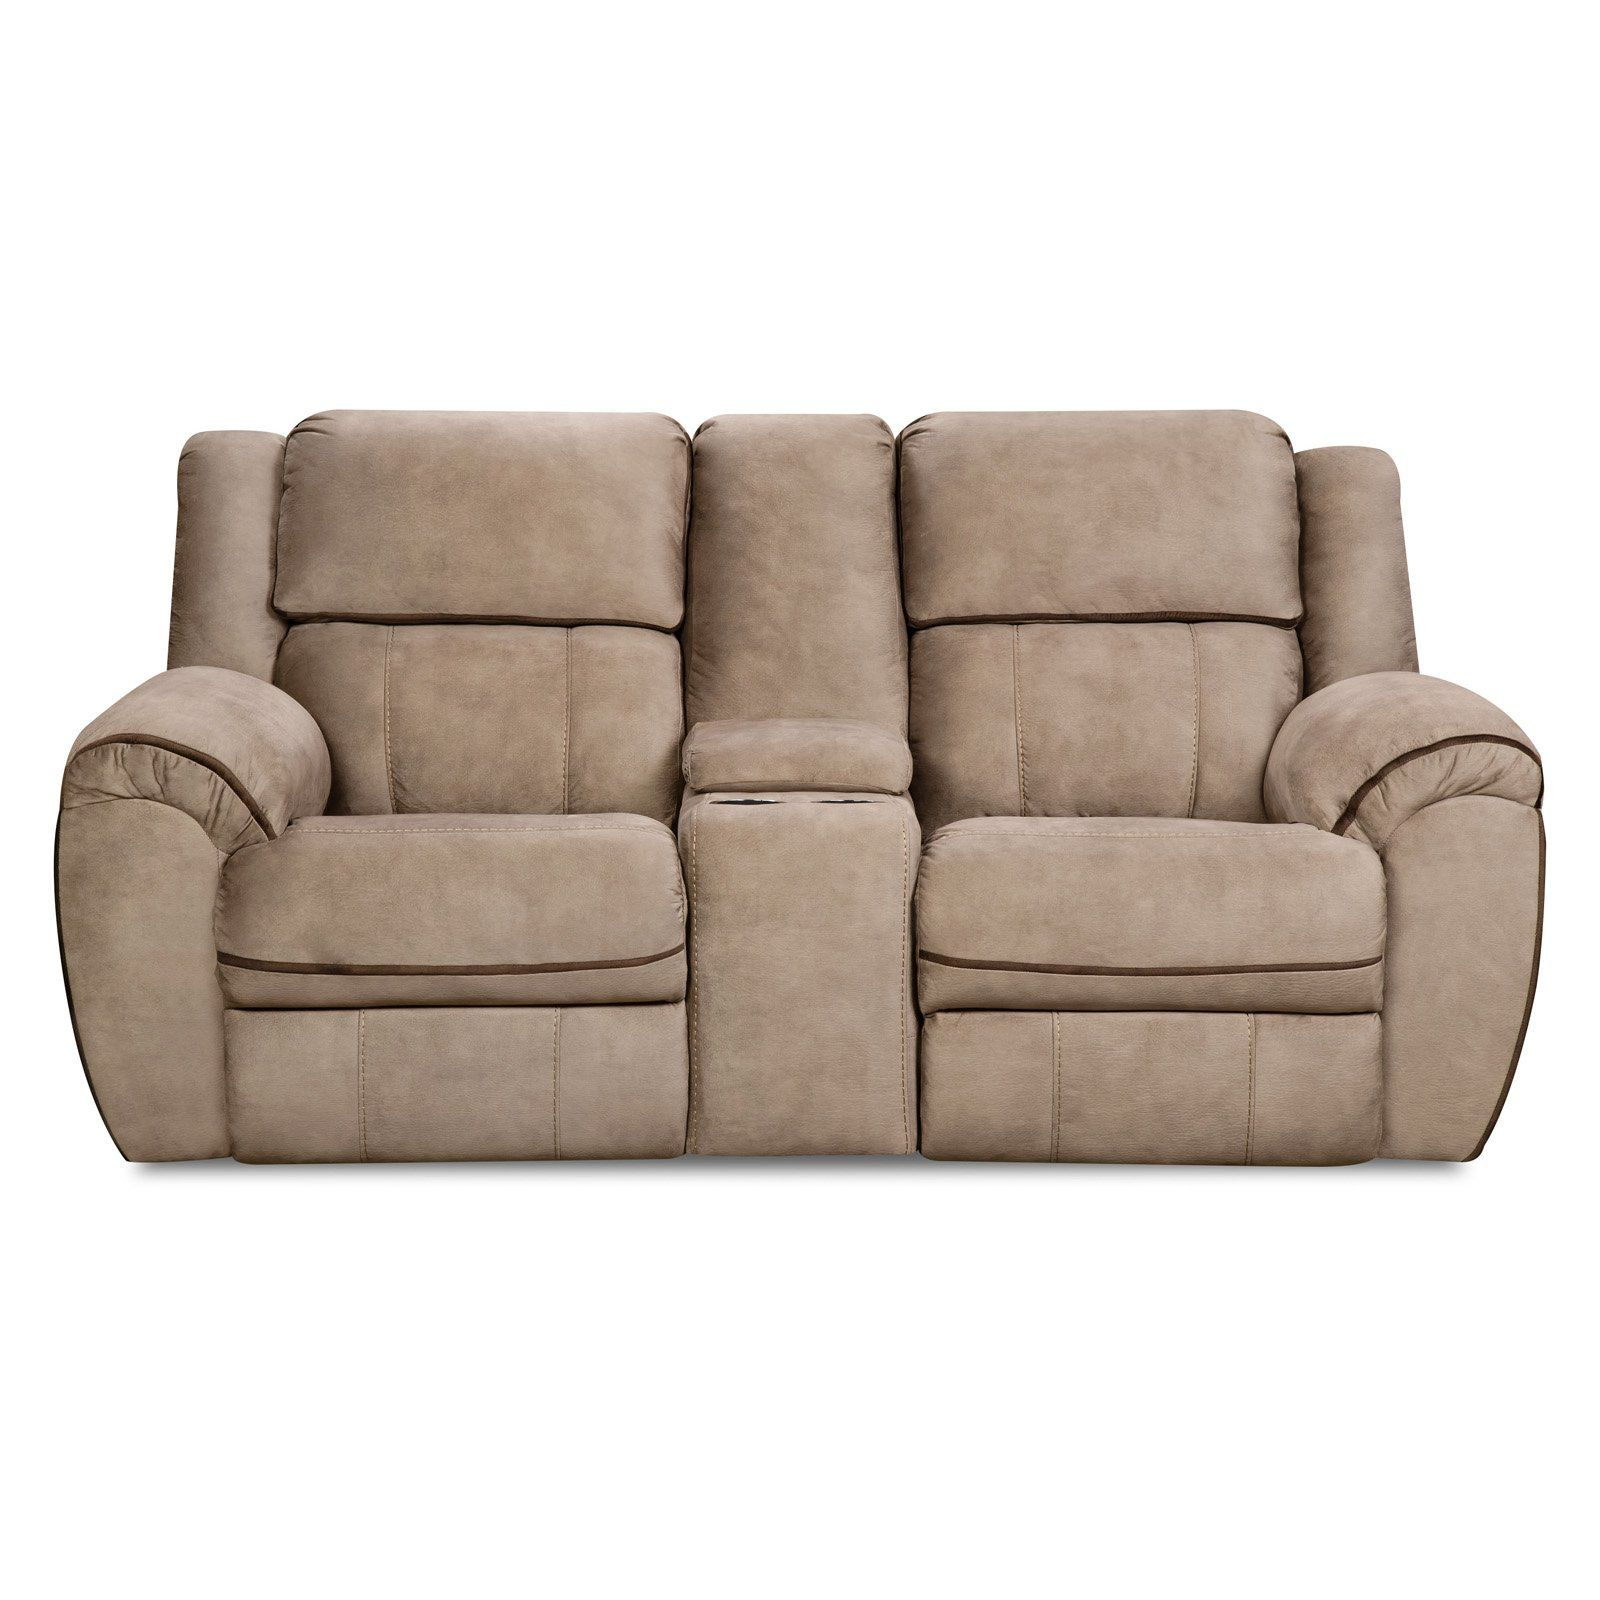 Cool Simmons Upholstery Osborn Tan Double Motion Loveseat Cjindustries Chair Design For Home Cjindustriesco